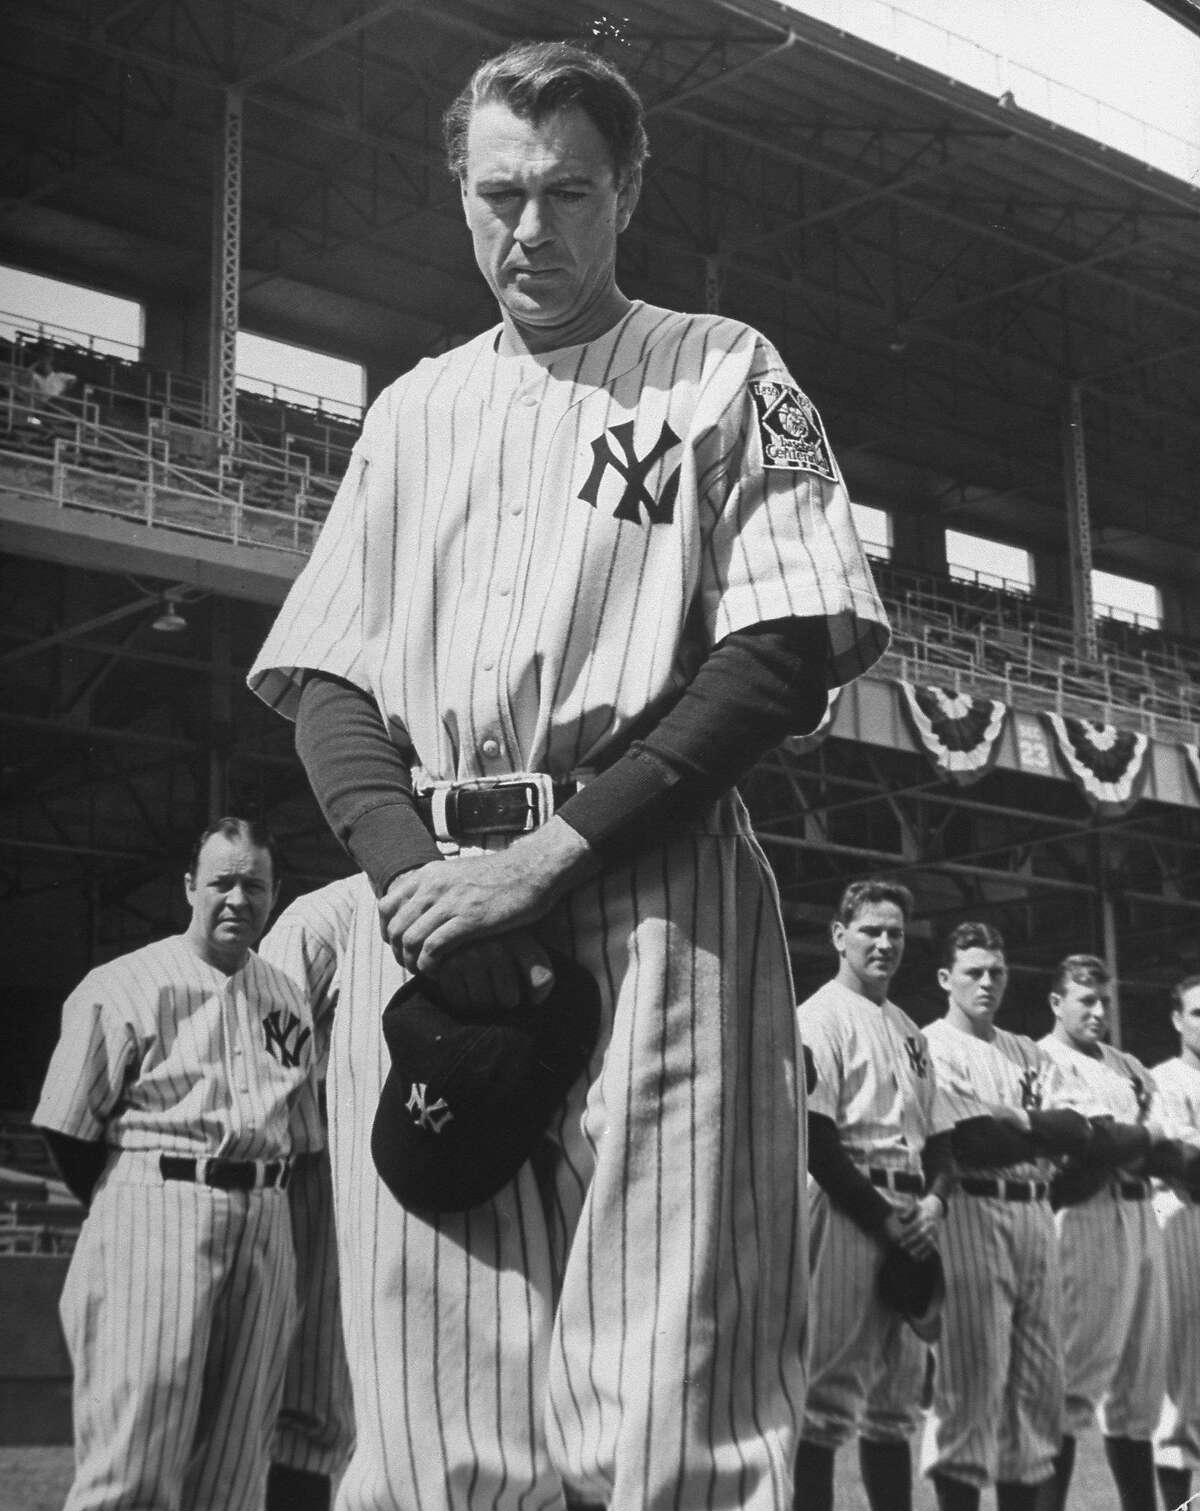 Gary Cooper as Lou Gehrig in film Pride of the Yankees. (Photo by Eliot Elisofon//Time Life Pictures/Getty Images)